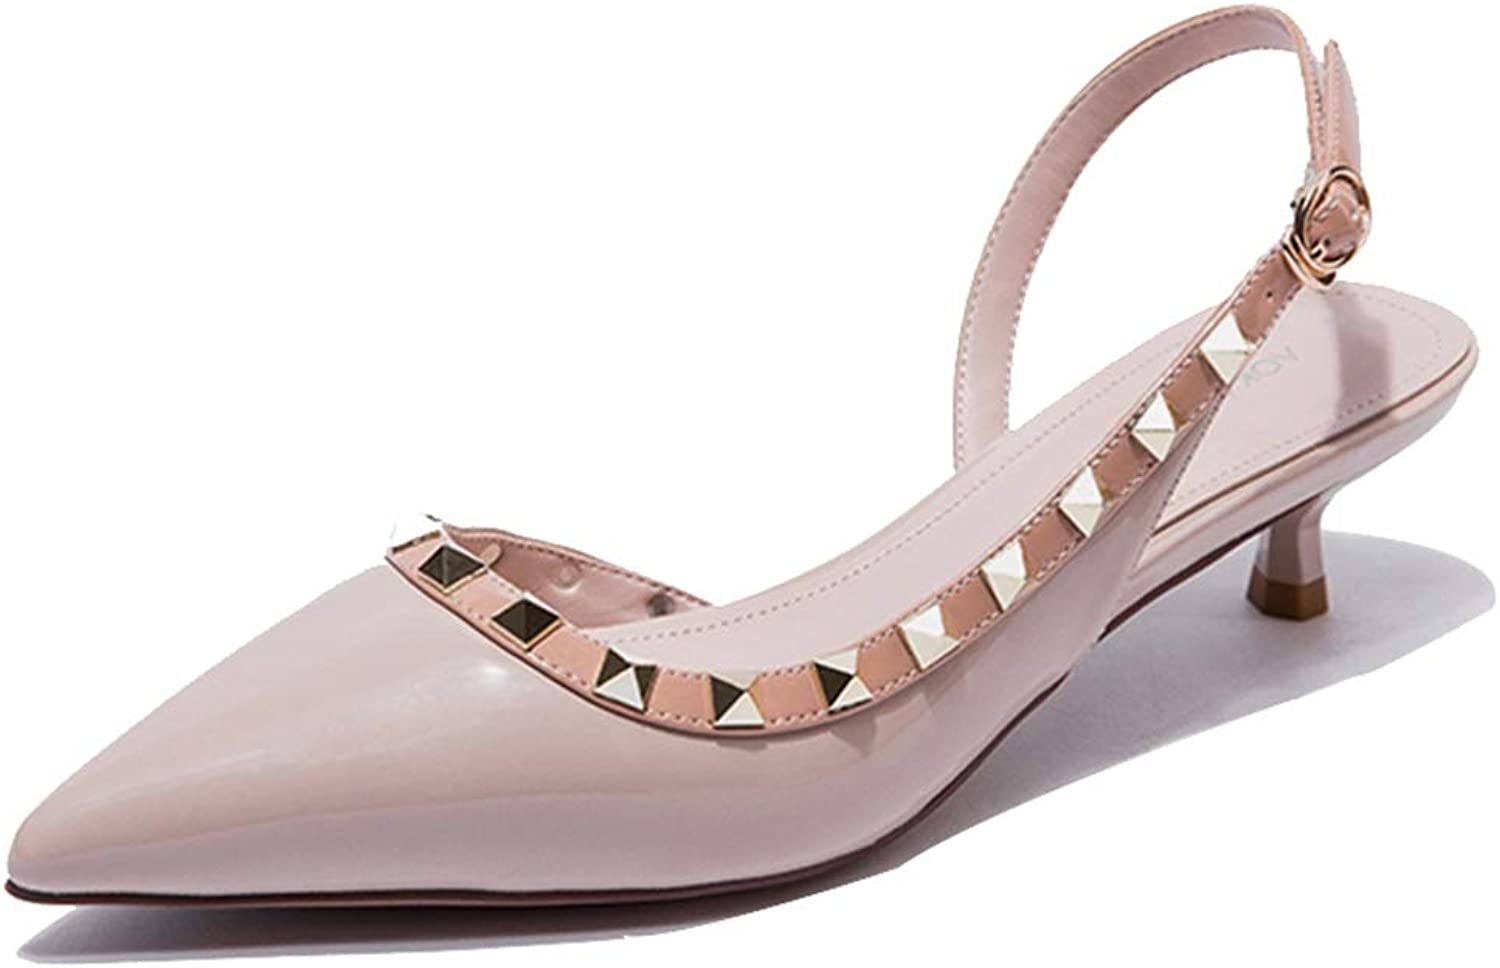 Pointed Rivet Women's shoes Kitten Heels for Women Mid Heel Sandals for Women Short Women's shoes Summer Women's Party shoes Court shoes, Fashion, Elegance (color   Pink, Size   37 US6.5-7)